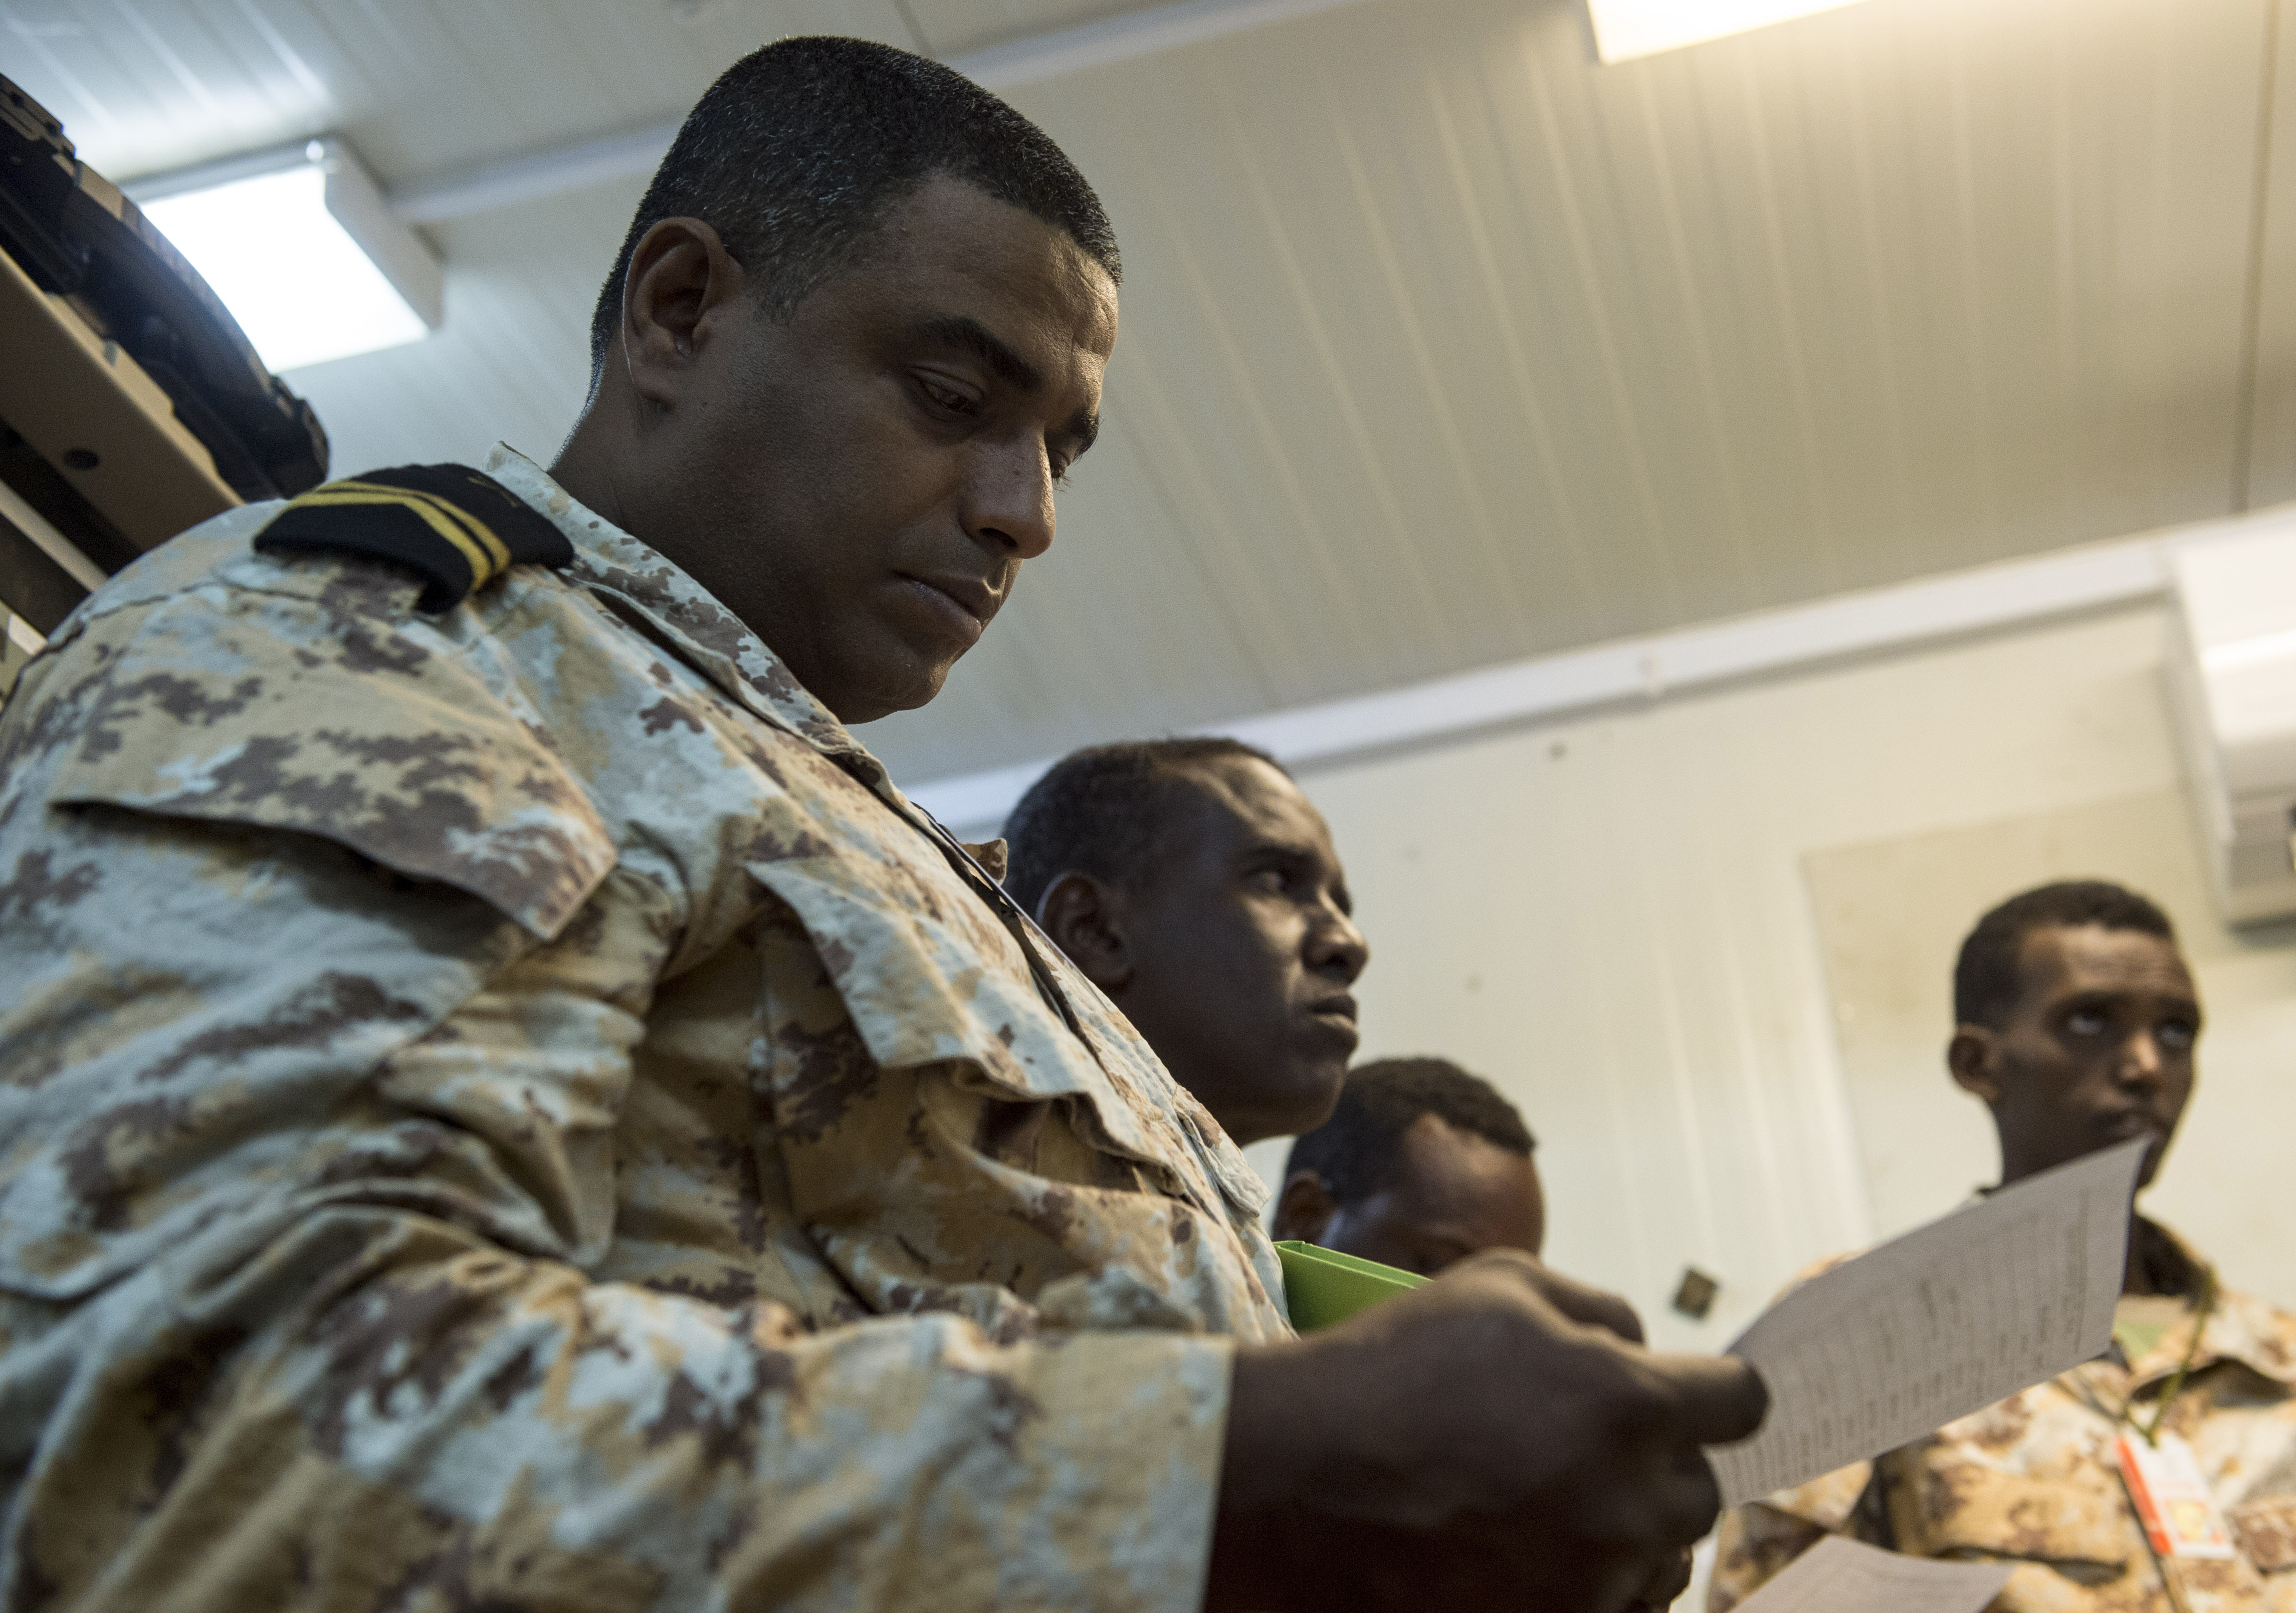 A Djibouti Armed Forces (FAD) member reviews a sheet of input commands during a military-to-military exchange course with U.S. Soldiers assigned to the Combined Joint Task Force - Horn of Africa (CJTF-HOA) Communications Directorate, at Camp Lemonnier, Djibouti, Jan. 9, 2018. Throughout a two-week period, communications experts advised Djiboutian service members on how to set up, operate, maintain, and troubleshoot network equipment to increase communication capabilities between African Union Mission in Somalia forces. (U.S. Air Force photo illustration by Staff Sgt. Timothy Moore)